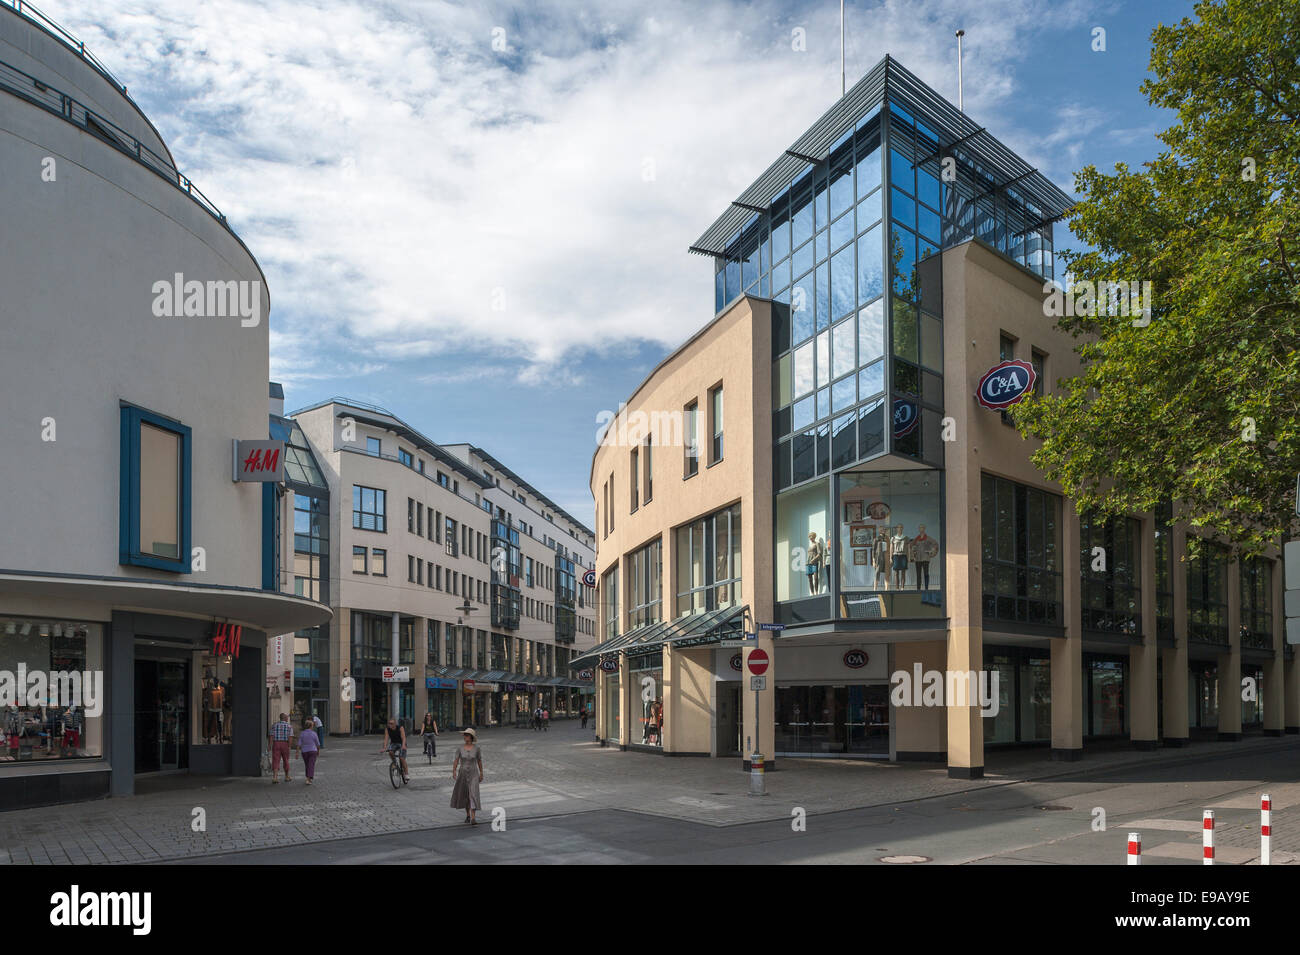 Modern shopping center Loebderstrasse, pedestrian street, downtown, Jena, Thuringia, Germany - Stock Image